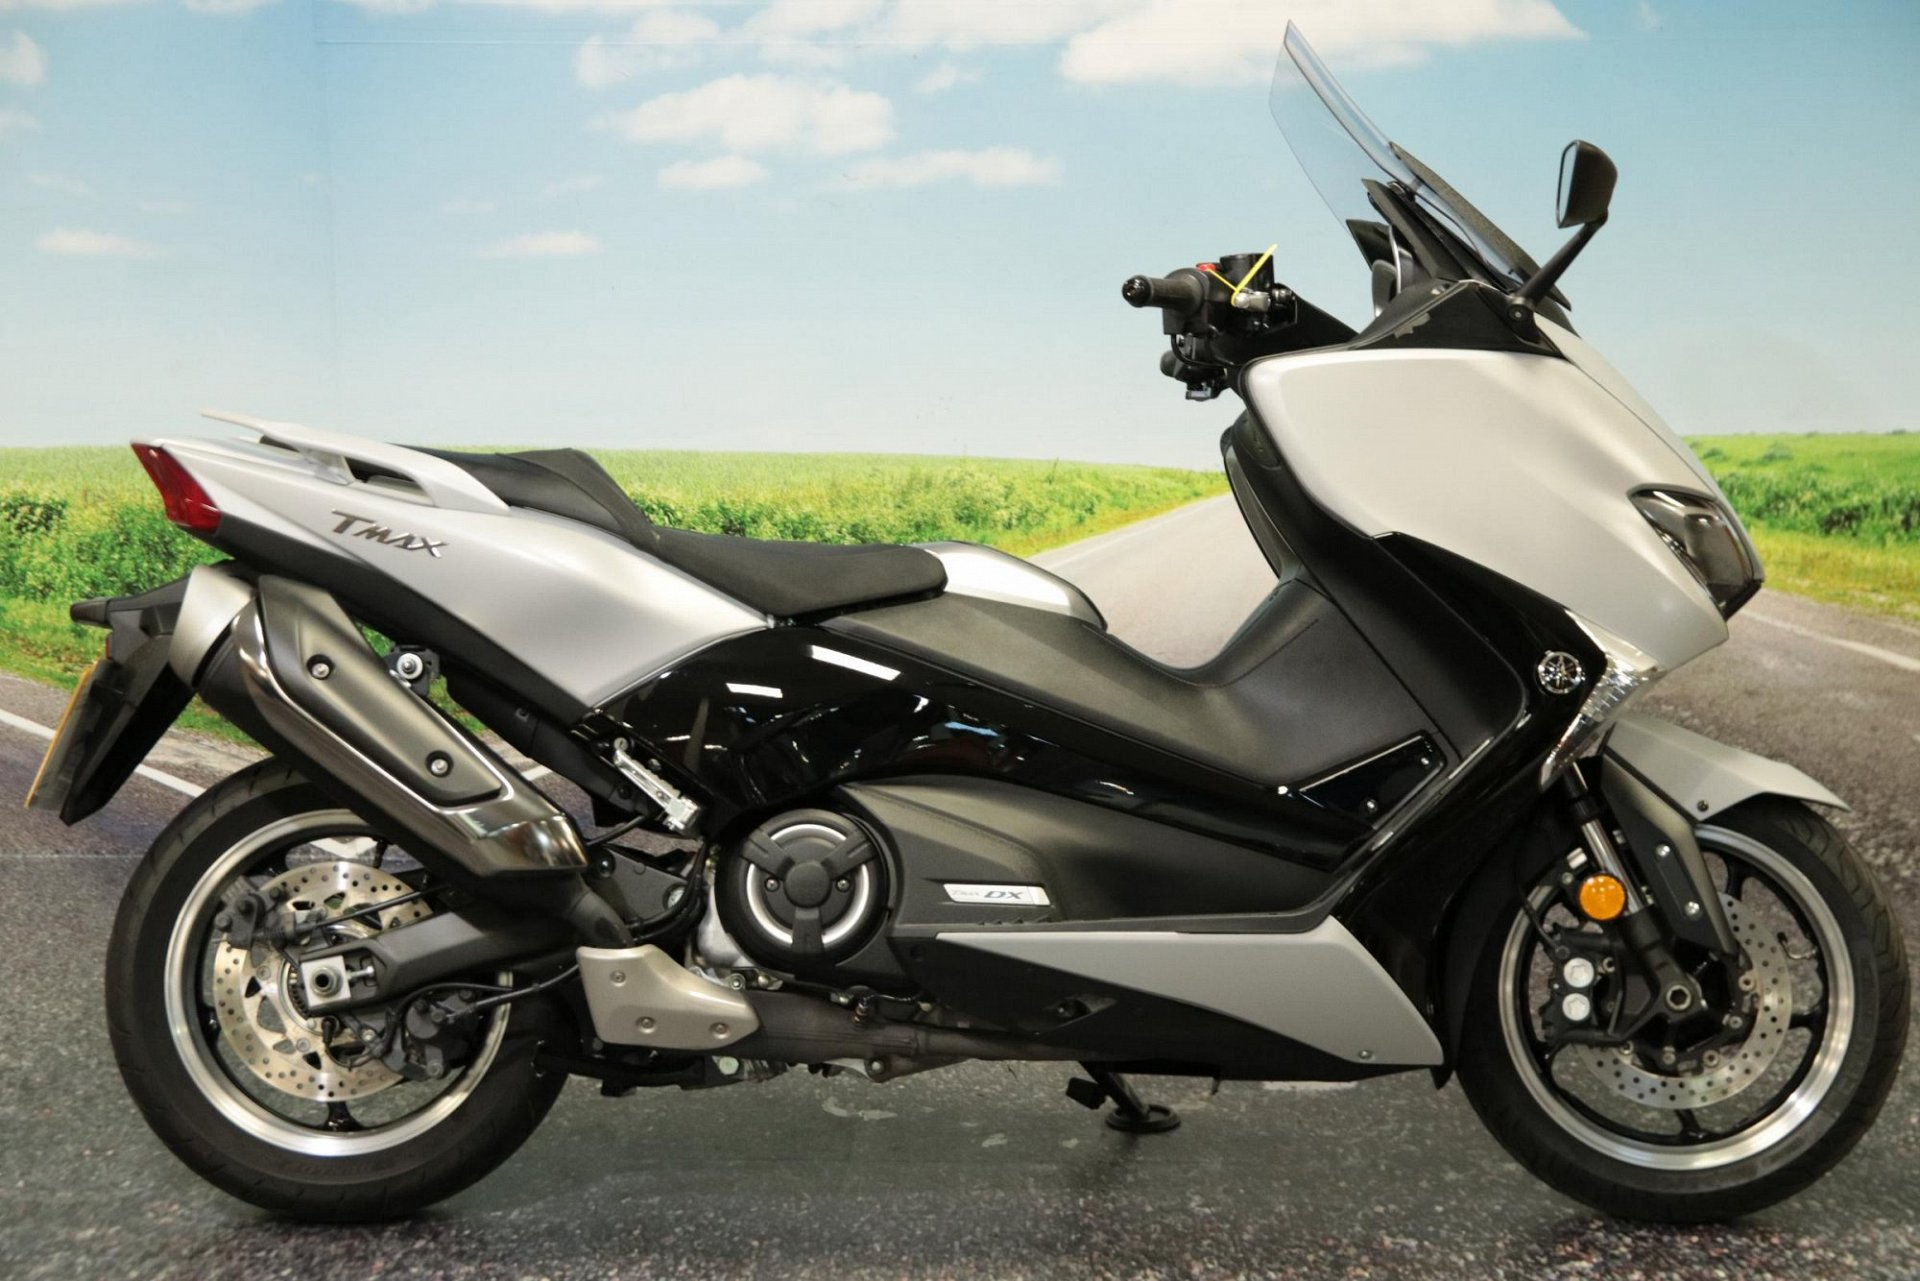 2019 Yamaha XP 530 D-A Tmax DX for sale in Derbyshire